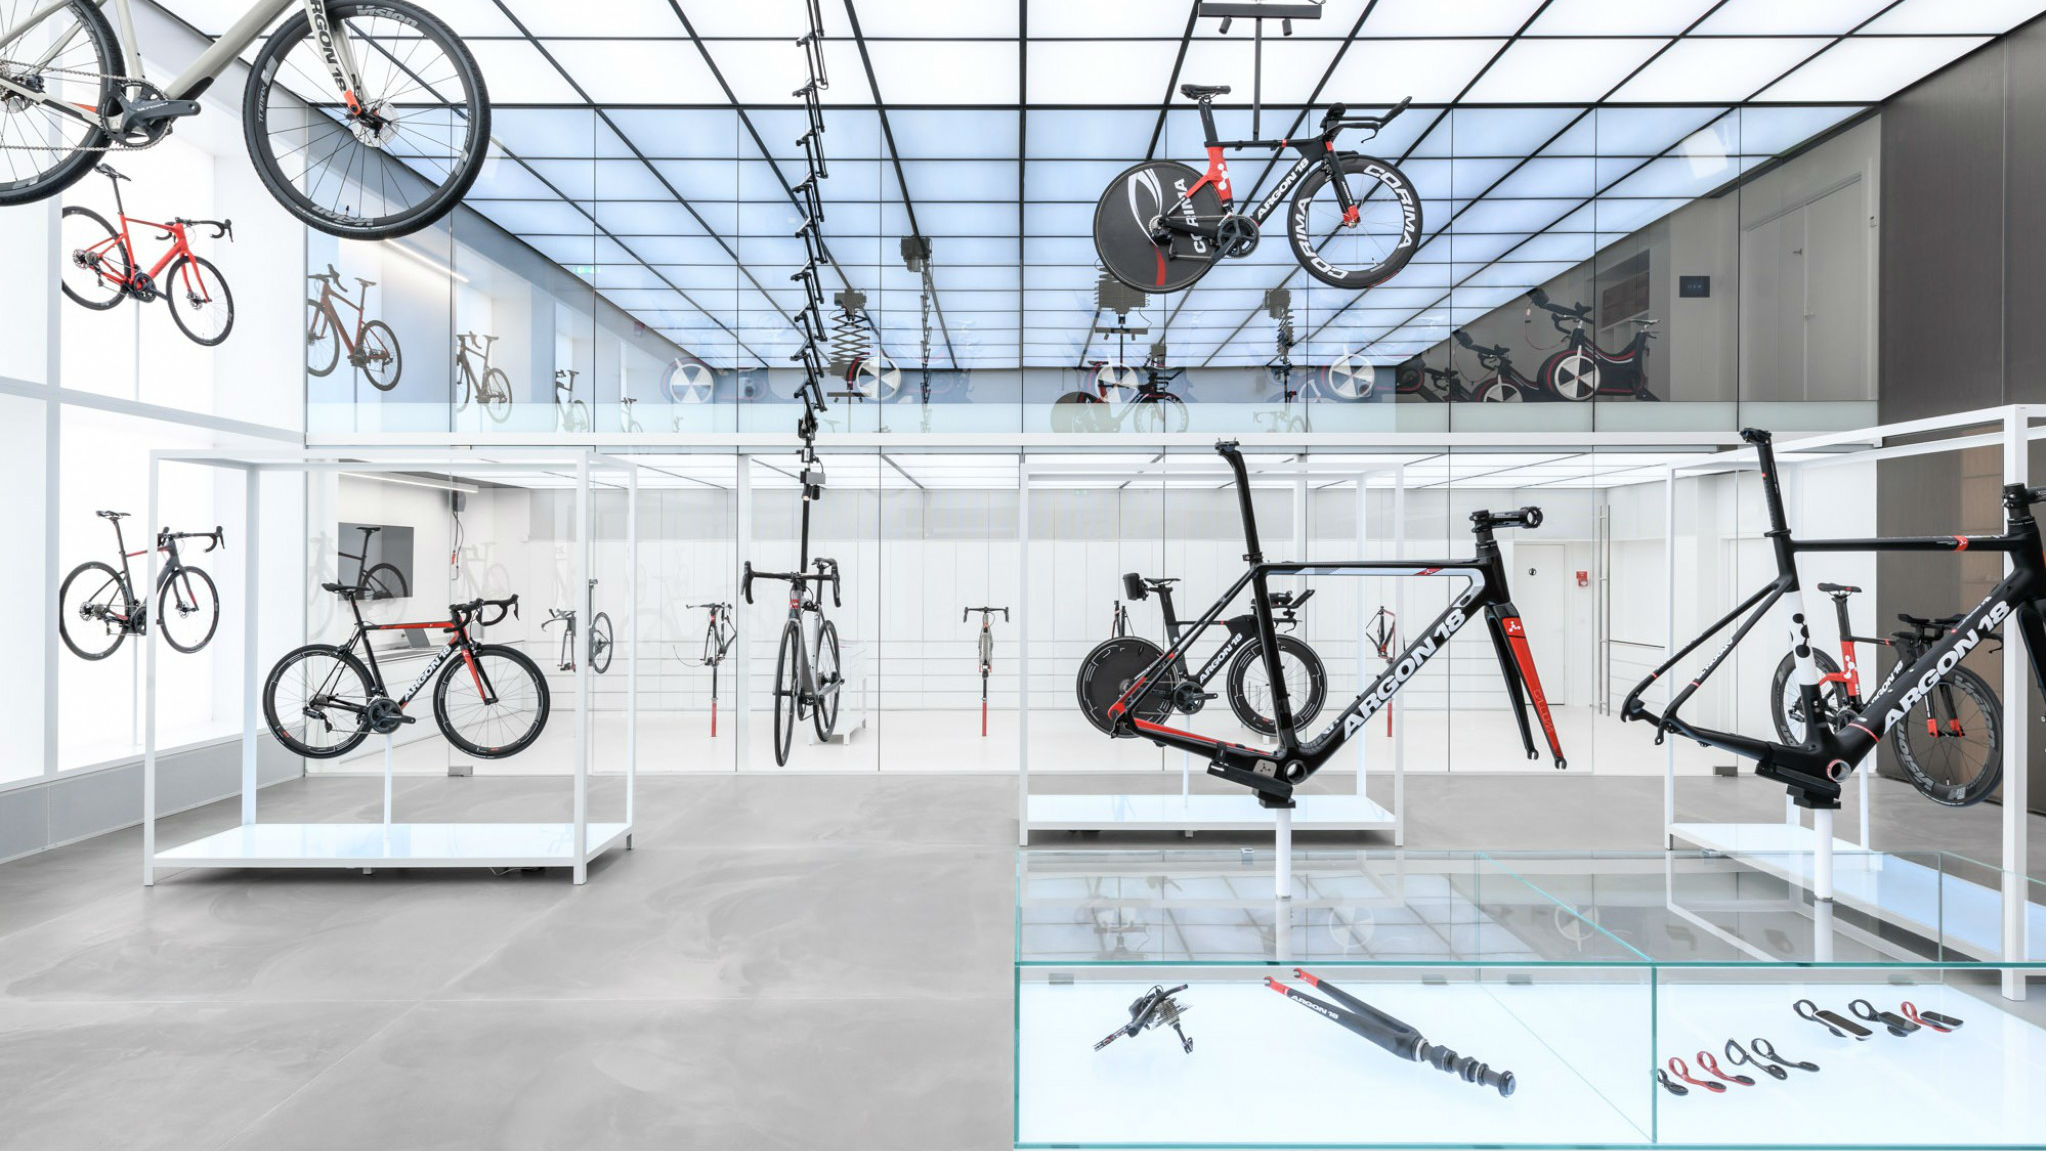 United Cycling LAB & Store, Lynge, Denmark, by Johannes Torpe Studios